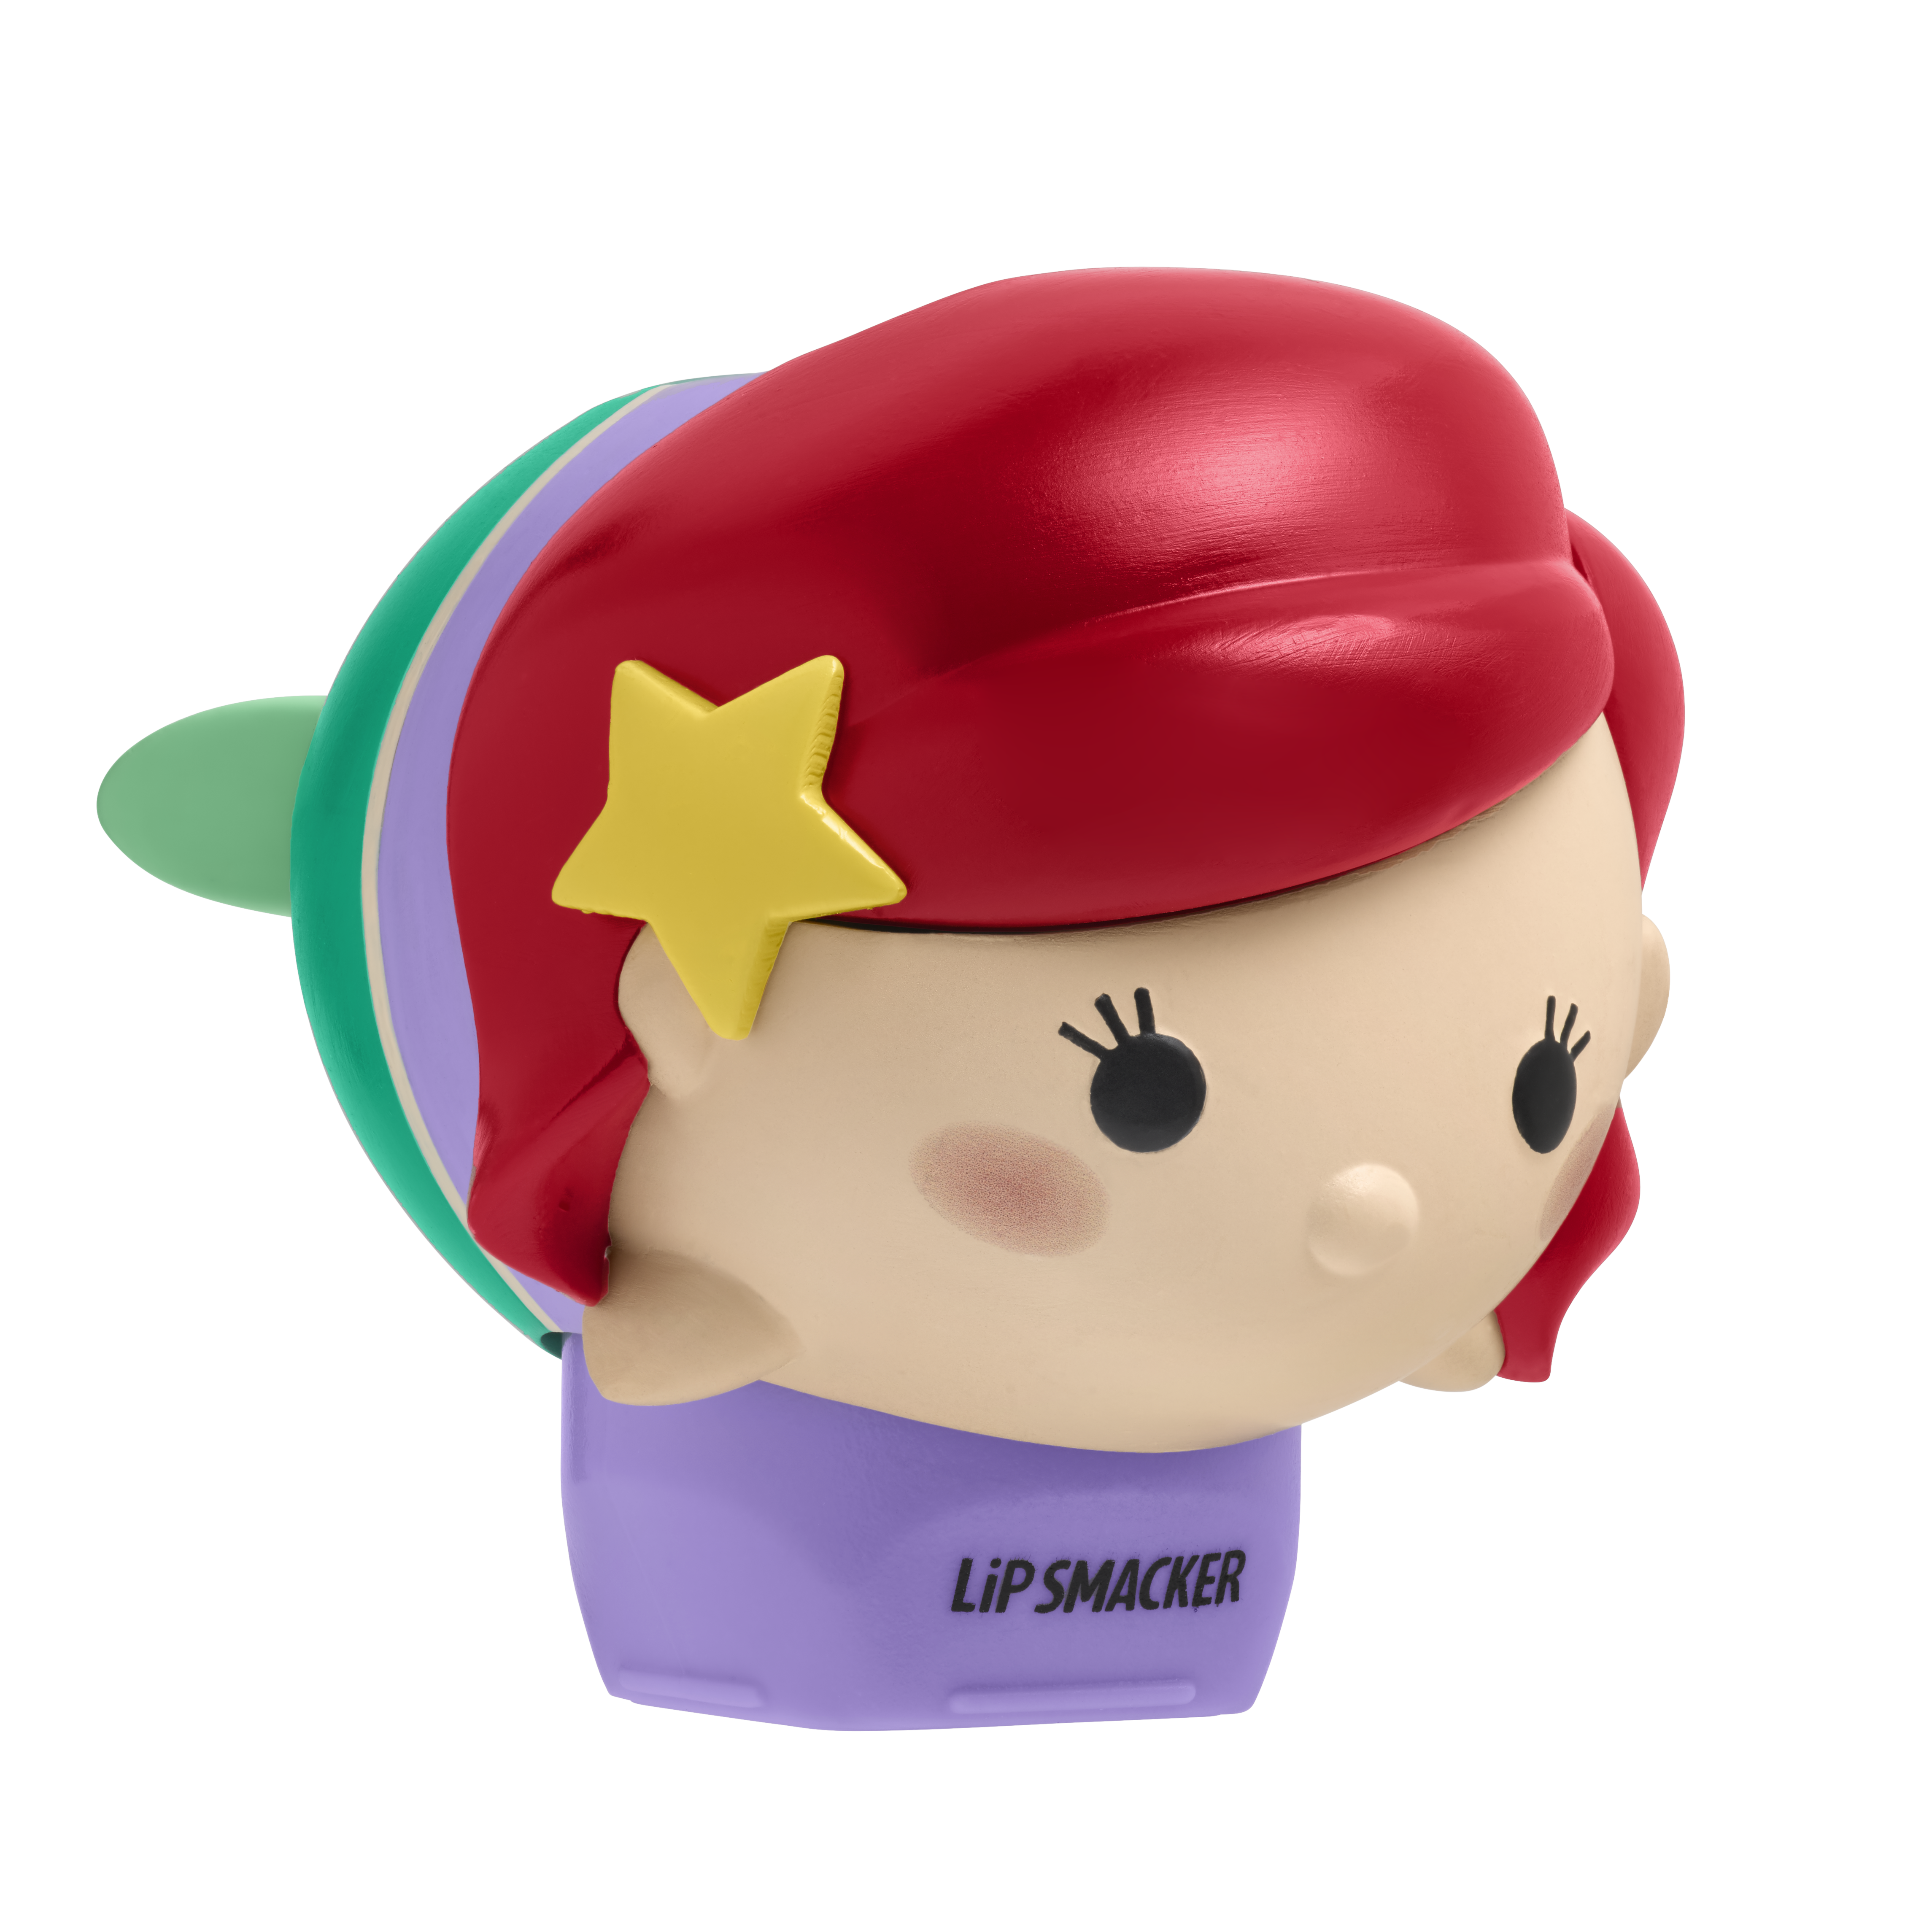 Lip Swmacker Disney Tsum Tsum Lip Balm